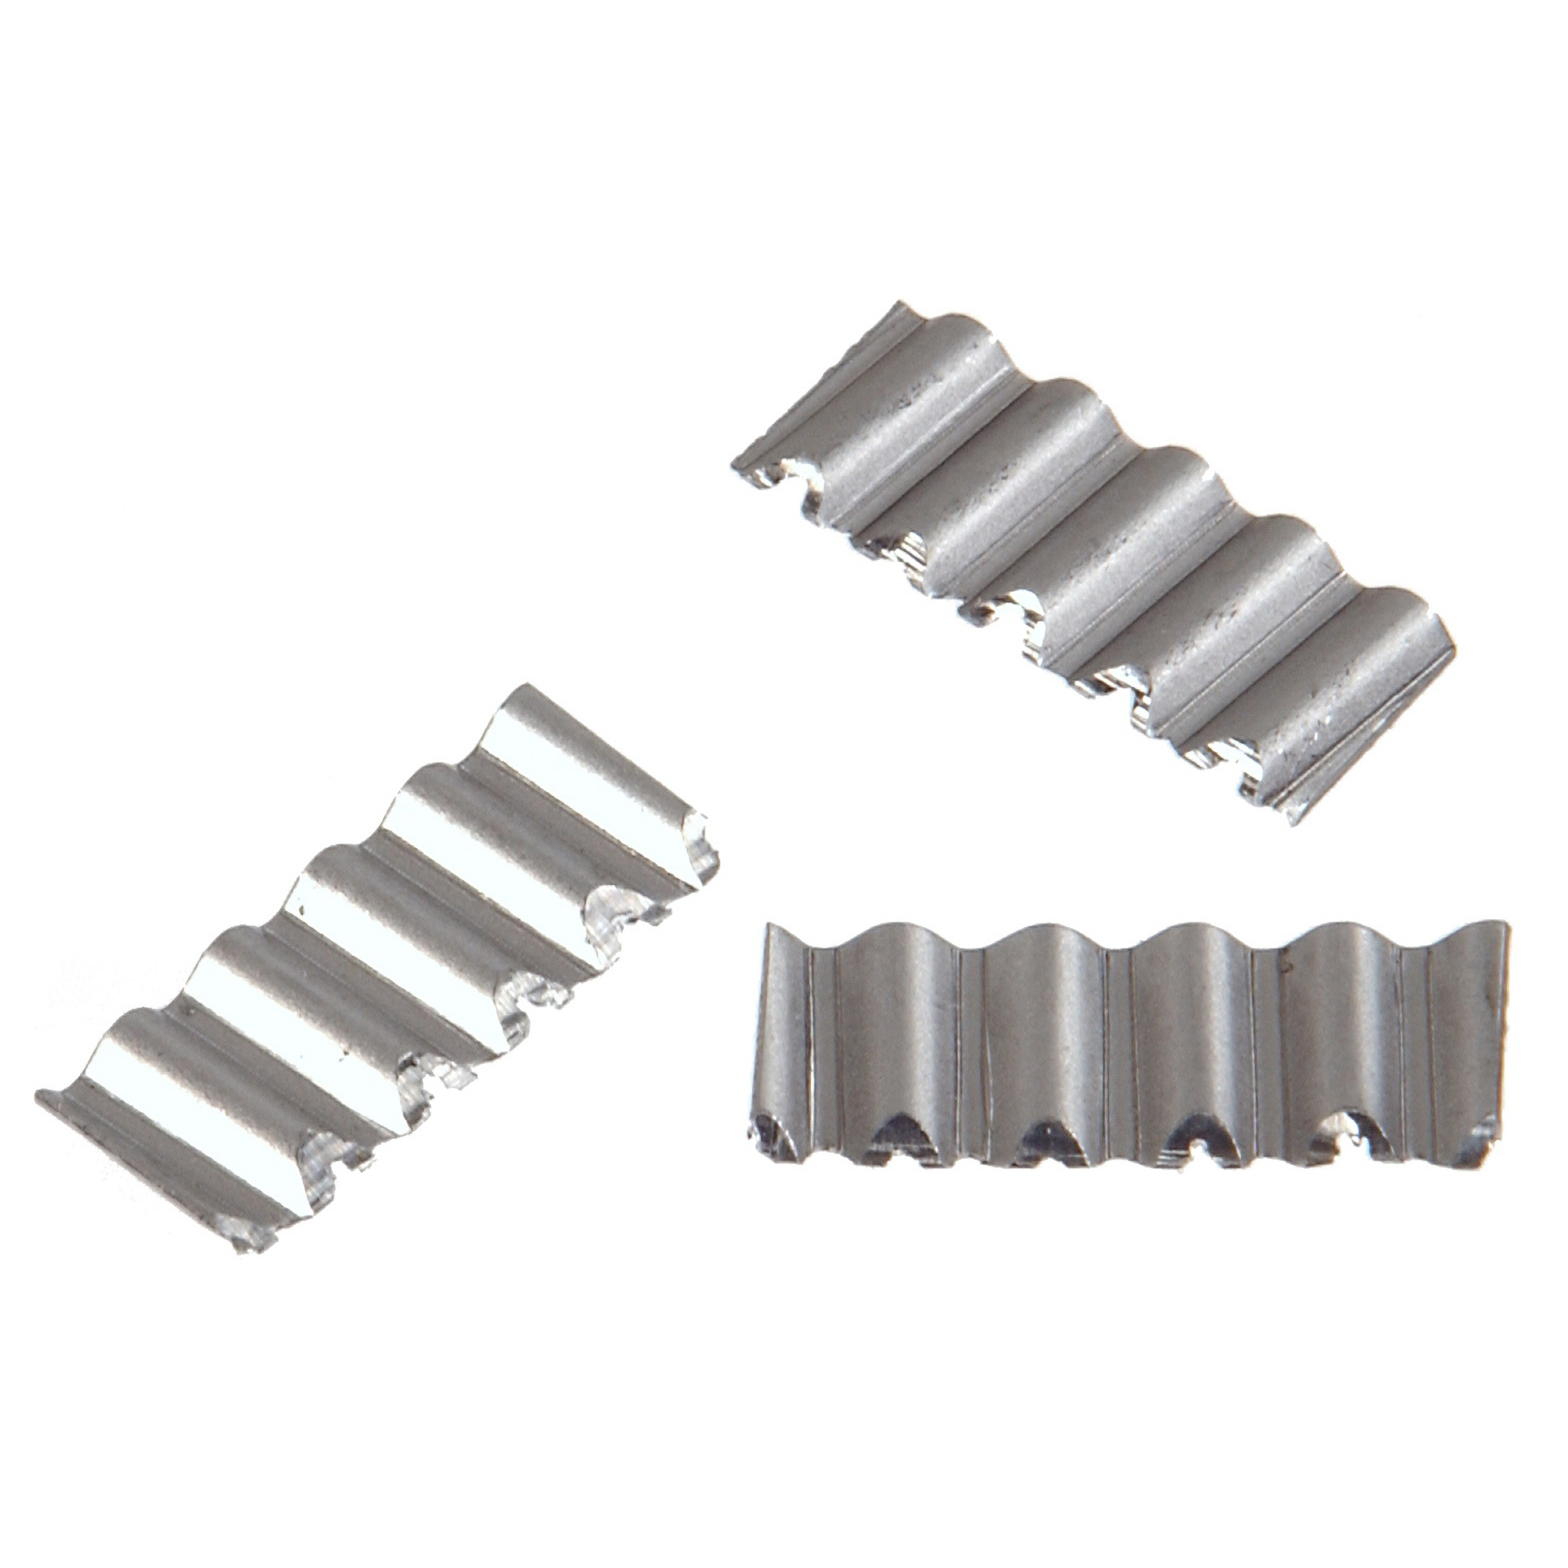 Picture of HILLMAN 532437 Joint Fastener, Steel